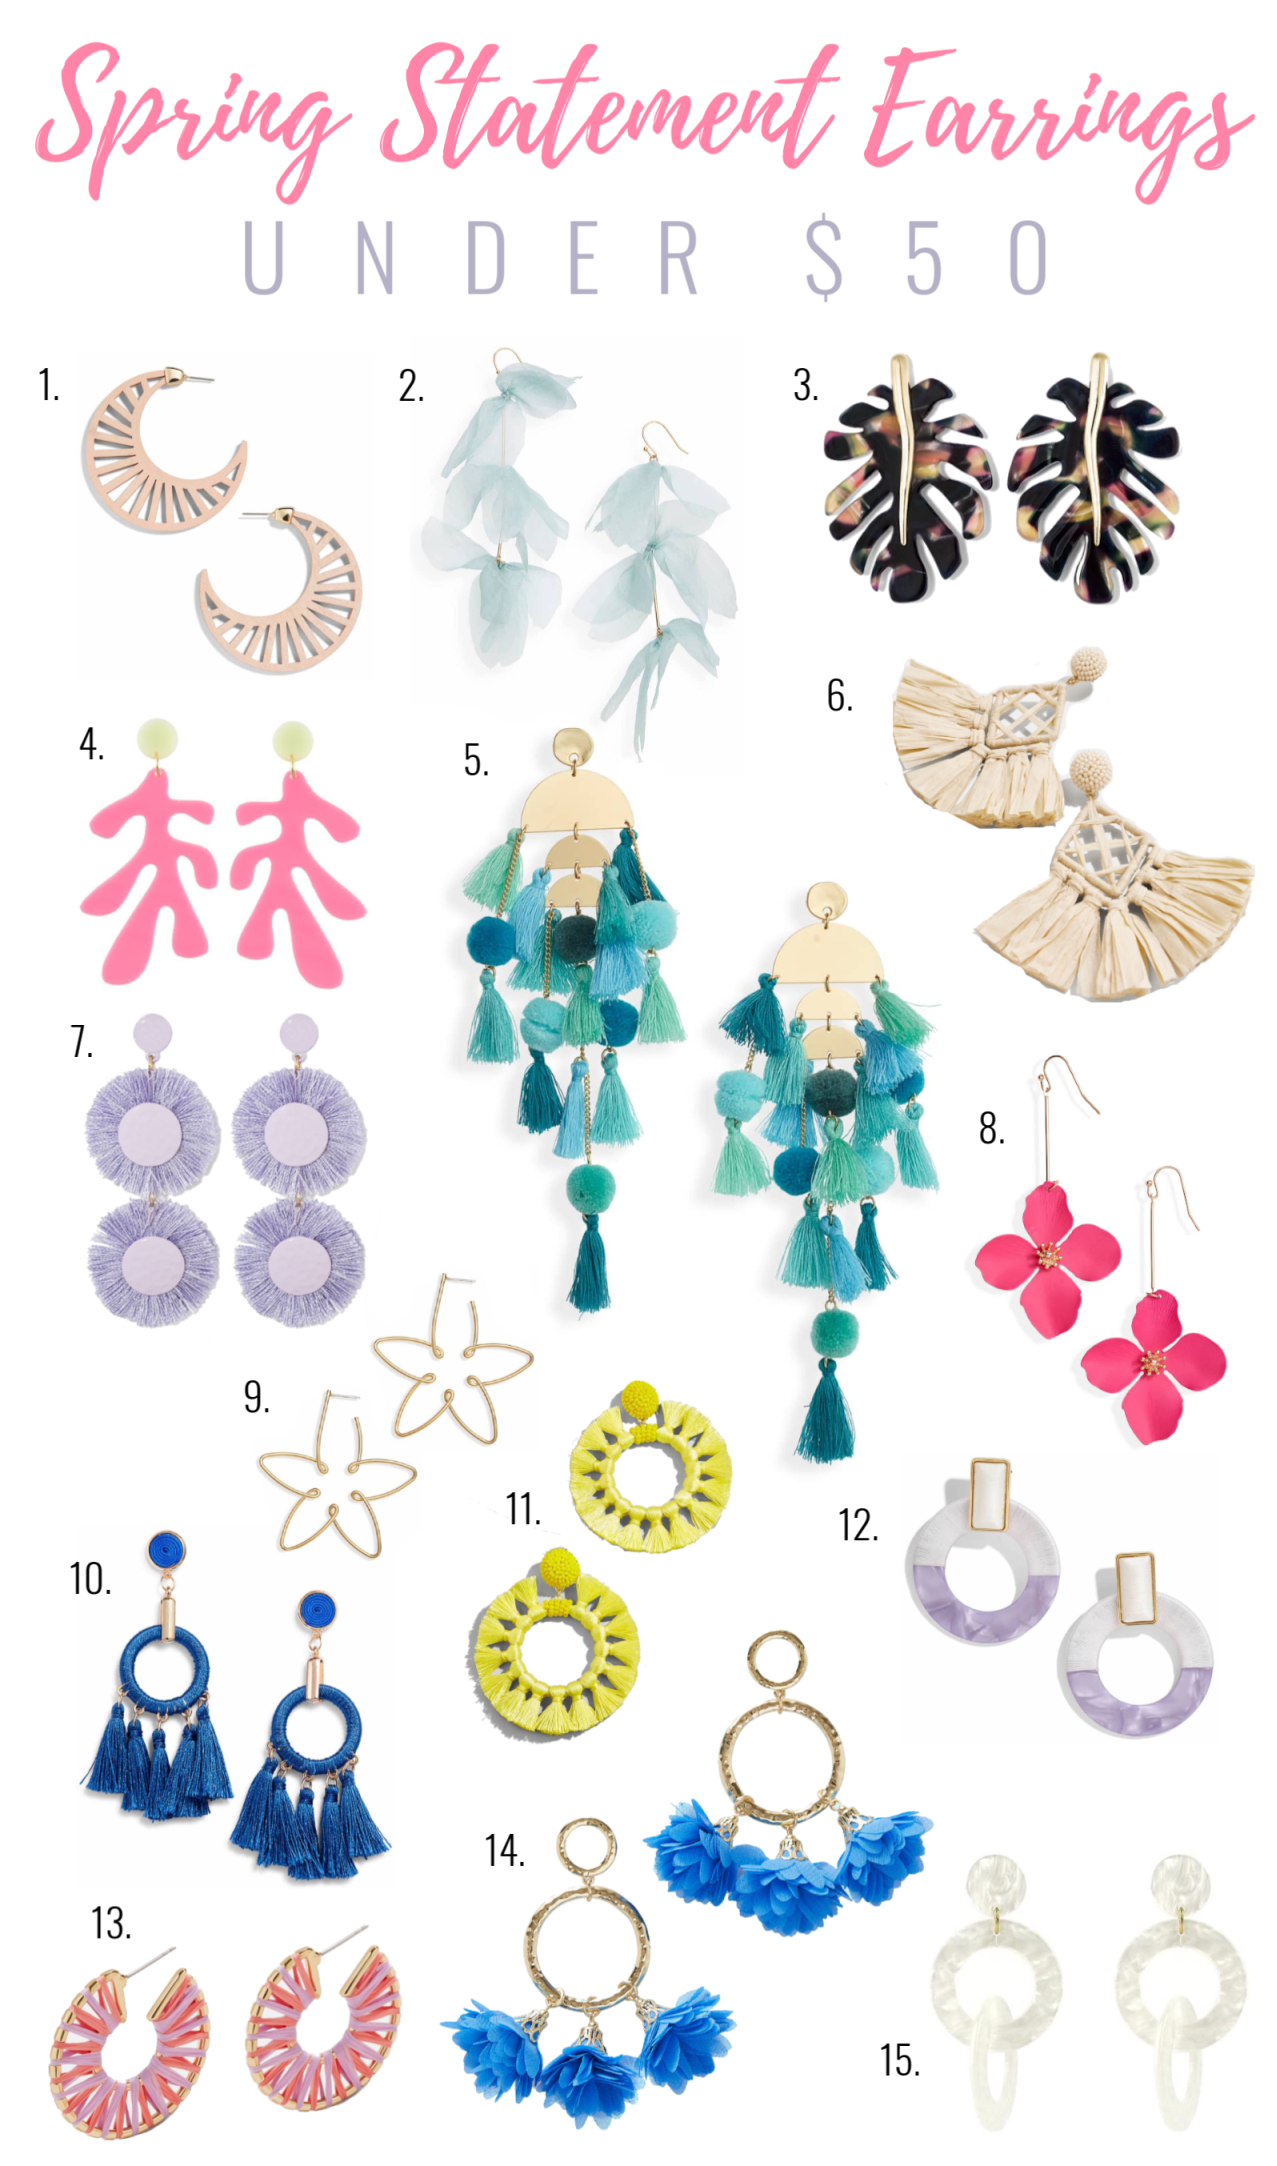 Spring Statement Earrings Under $50, affordable statement earrings